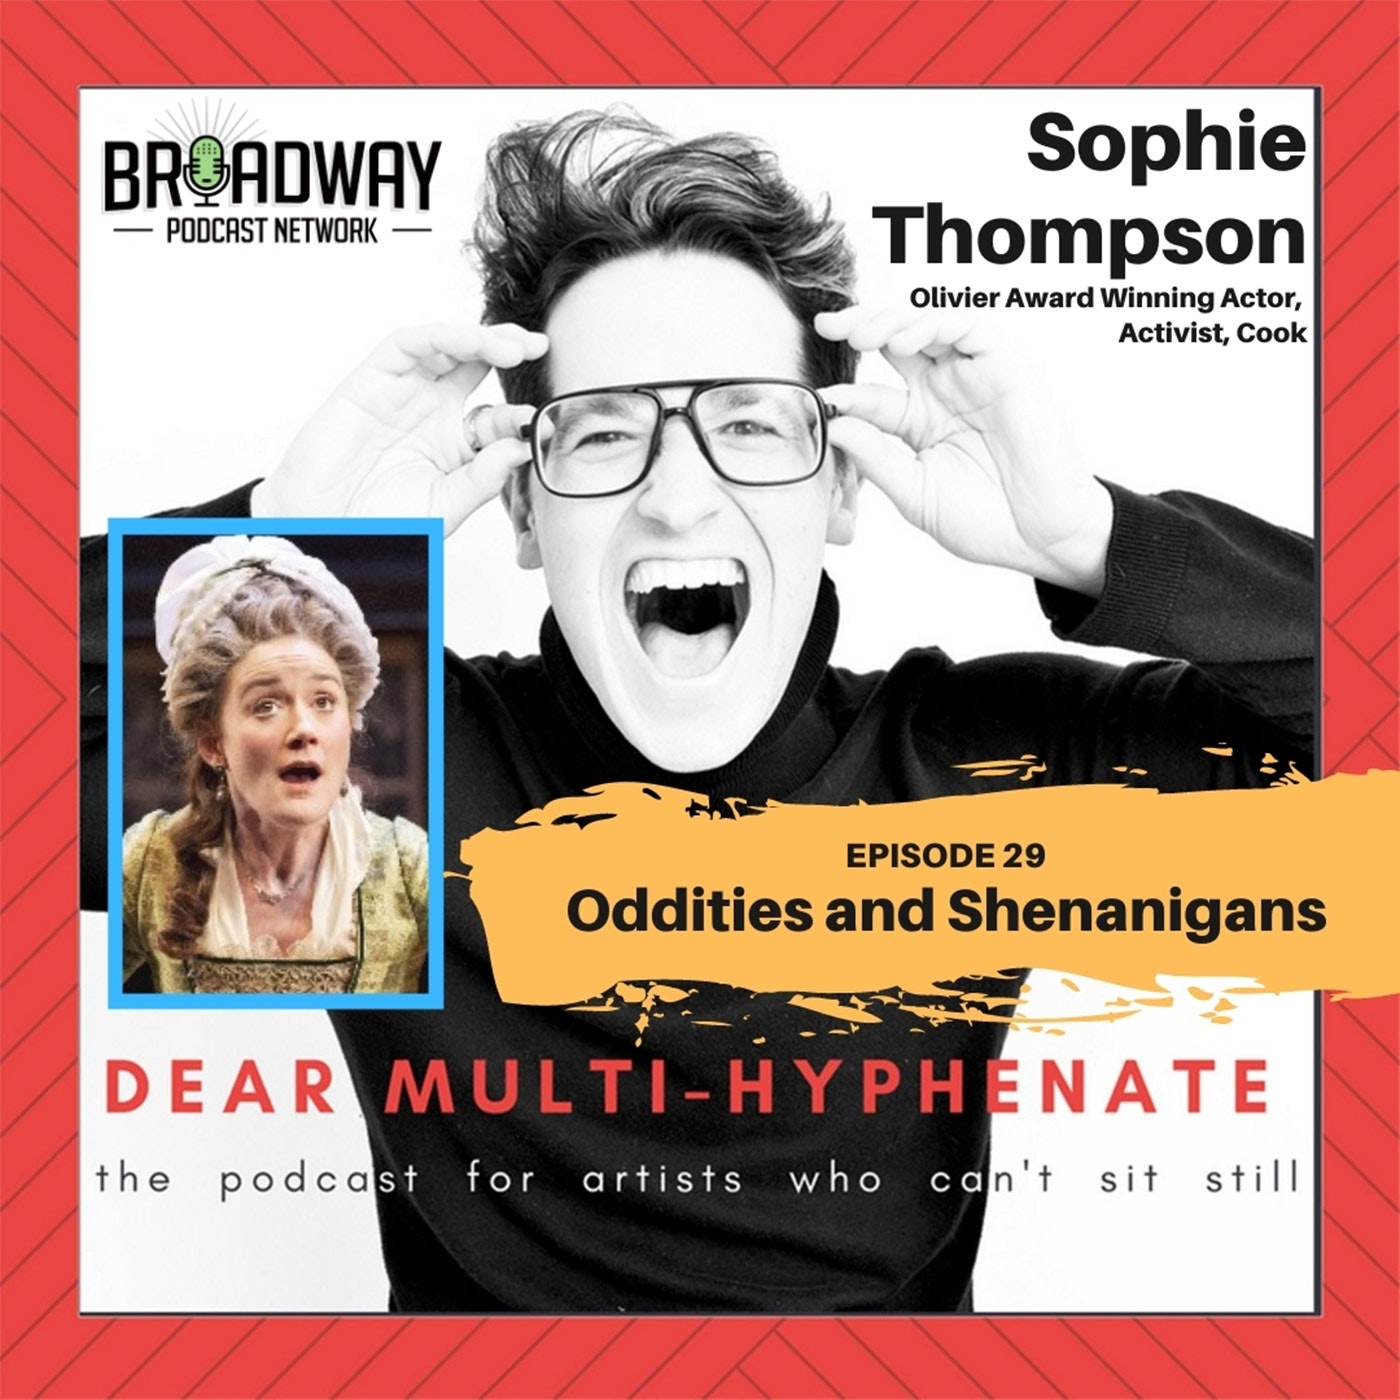 Dear Multi-hyphenate #29 - Sophie Thompson: Oddities and Shenanigans